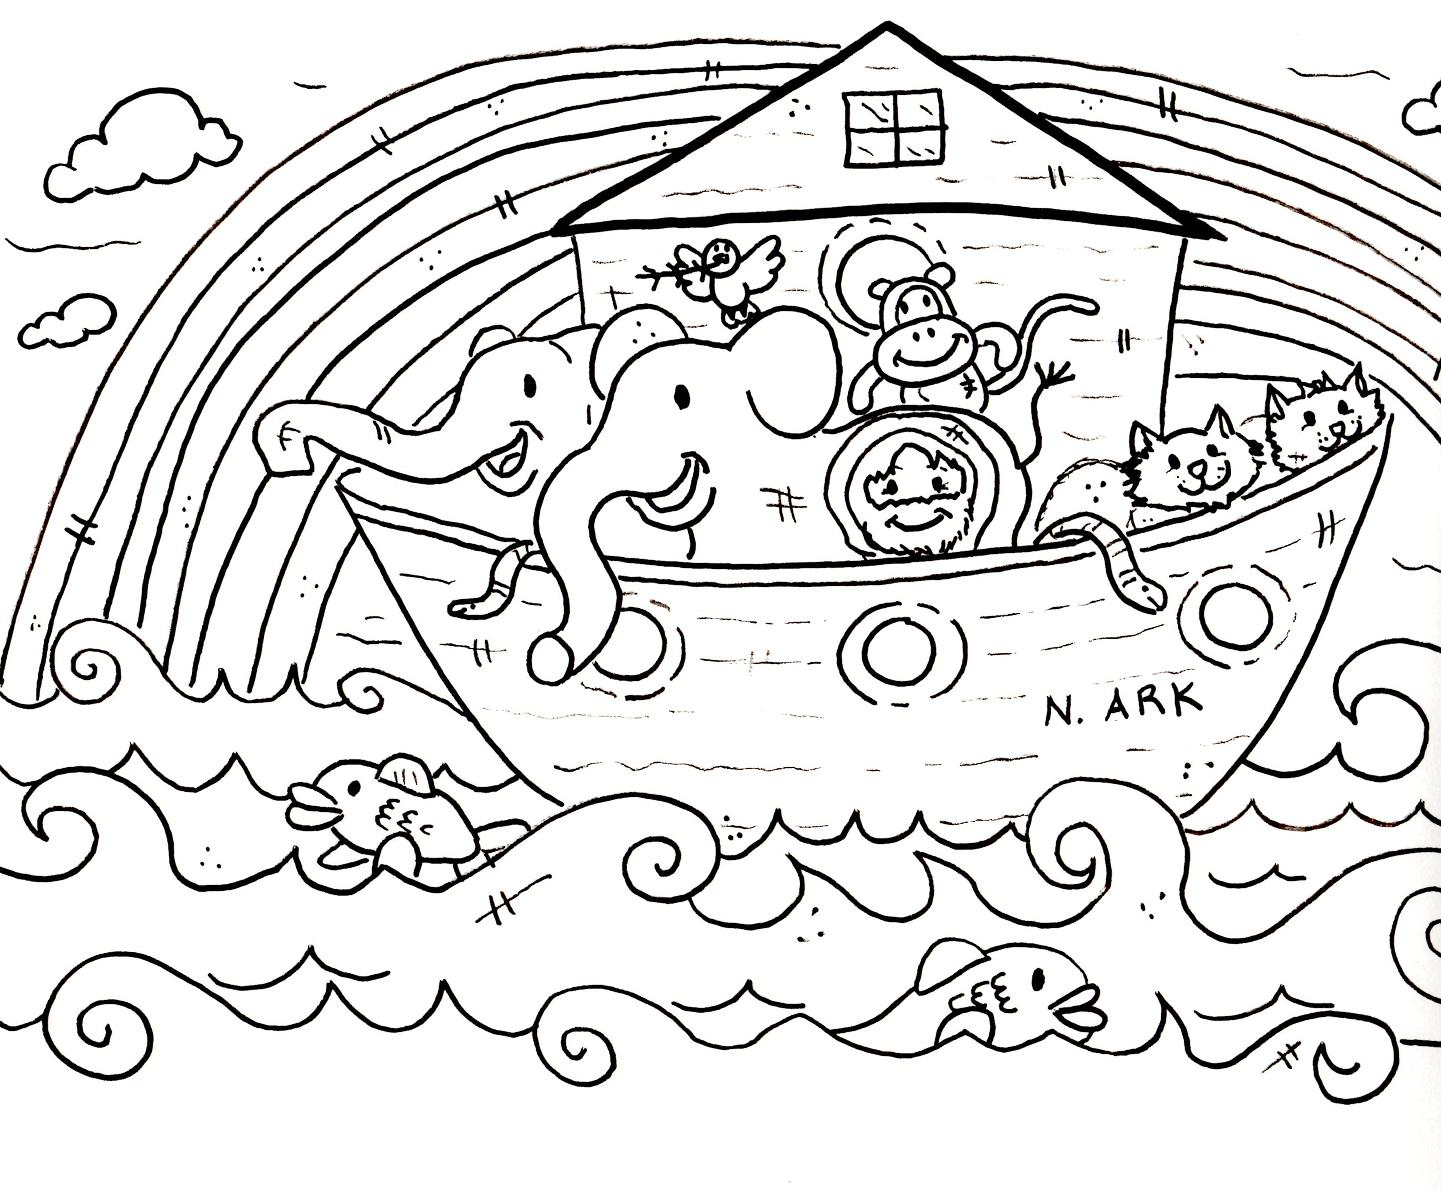 Coloring Pages : Free Printable Bible Storyloring Pages Property For - Free Printable Bible Coloring Pages